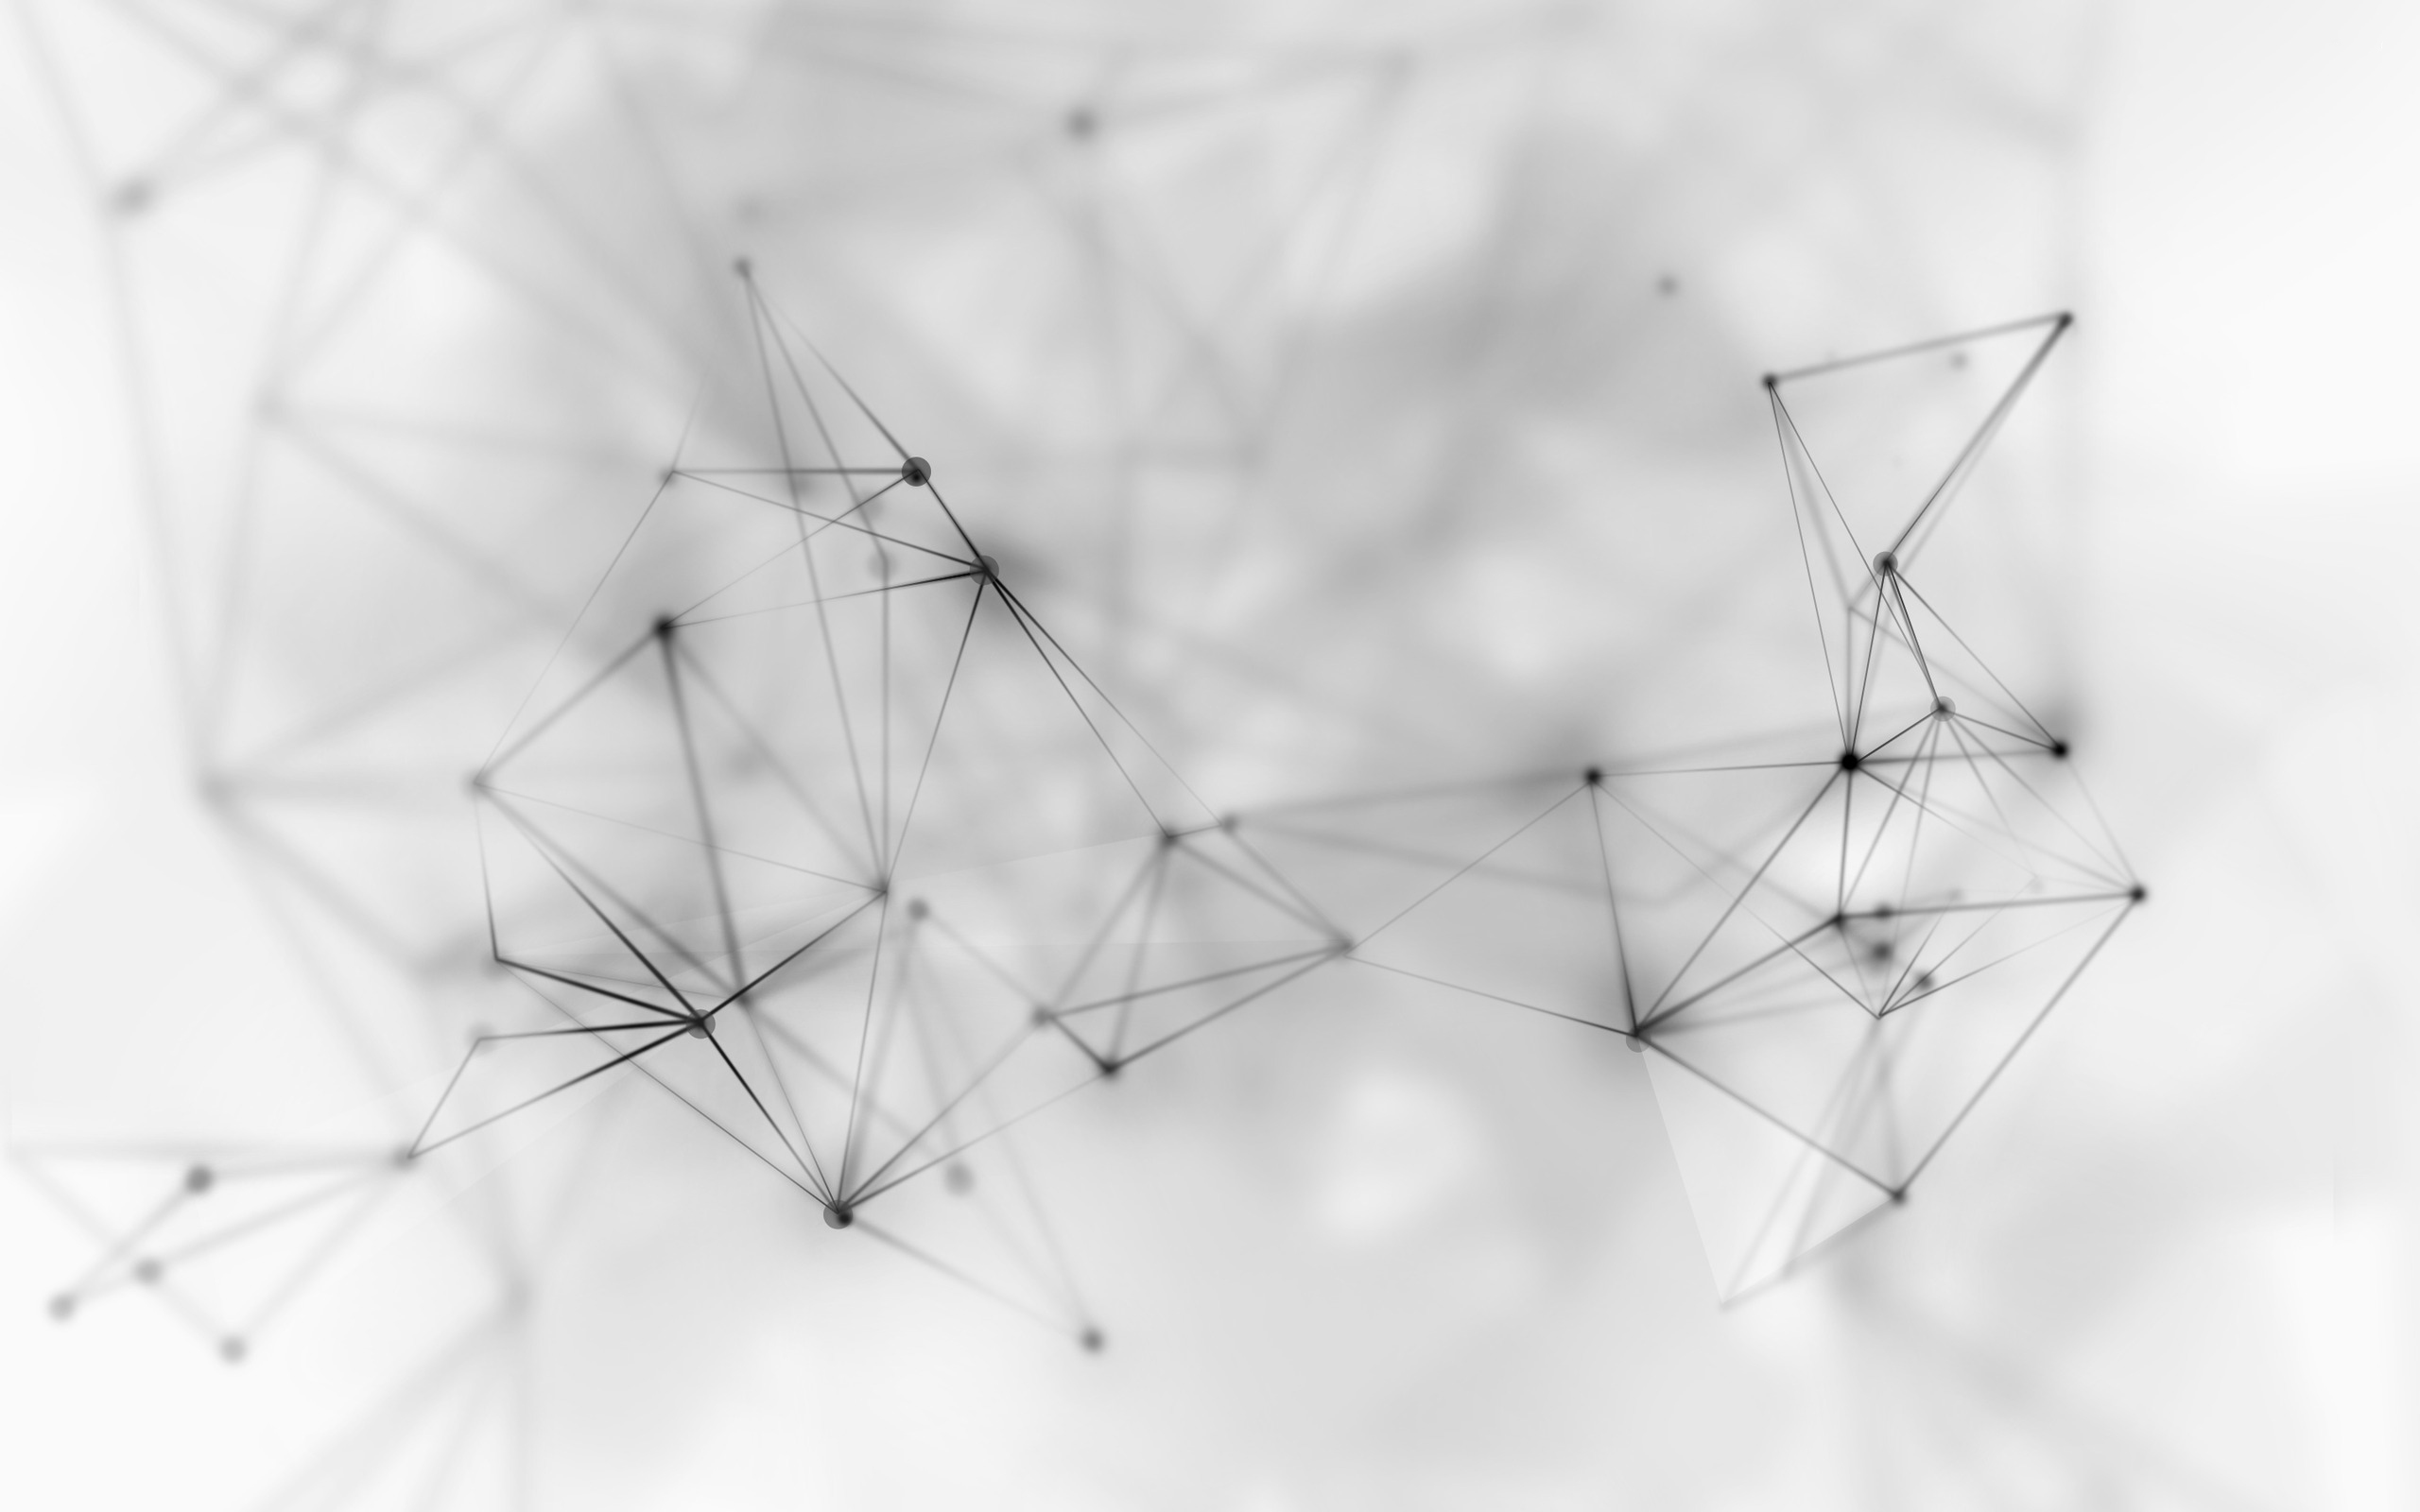 Network Abstract Wallpaper